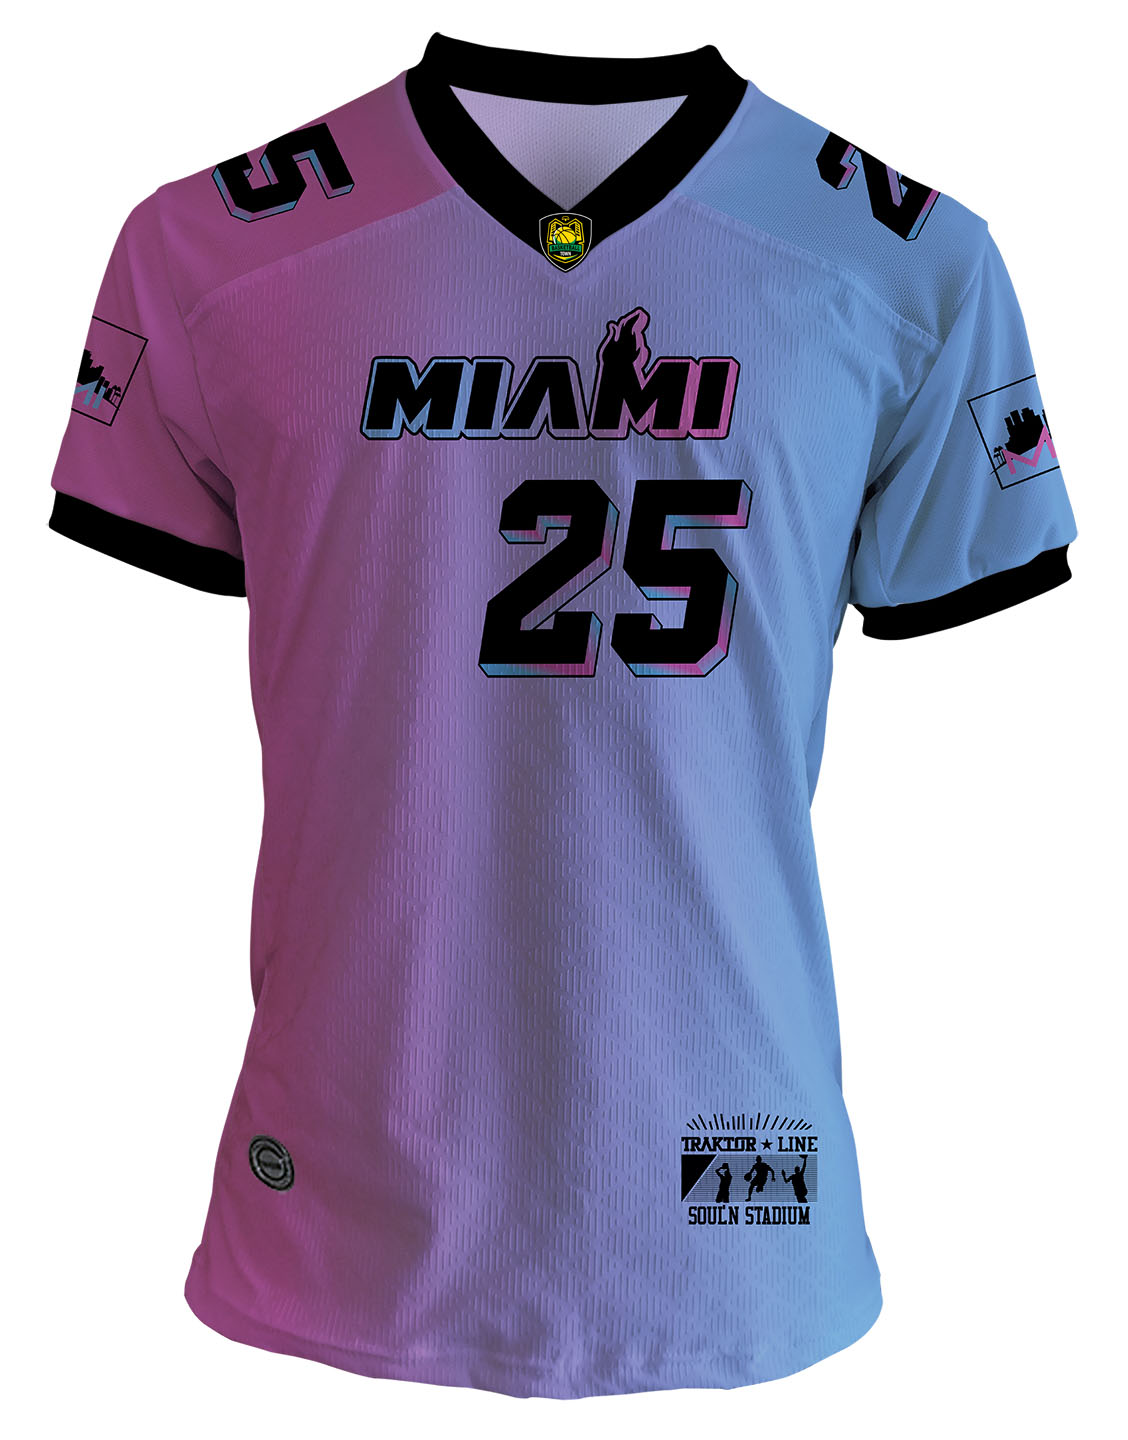 CAMISA MIAMI MIND'S CITY SPECIAL EDITION DEGRADÊ